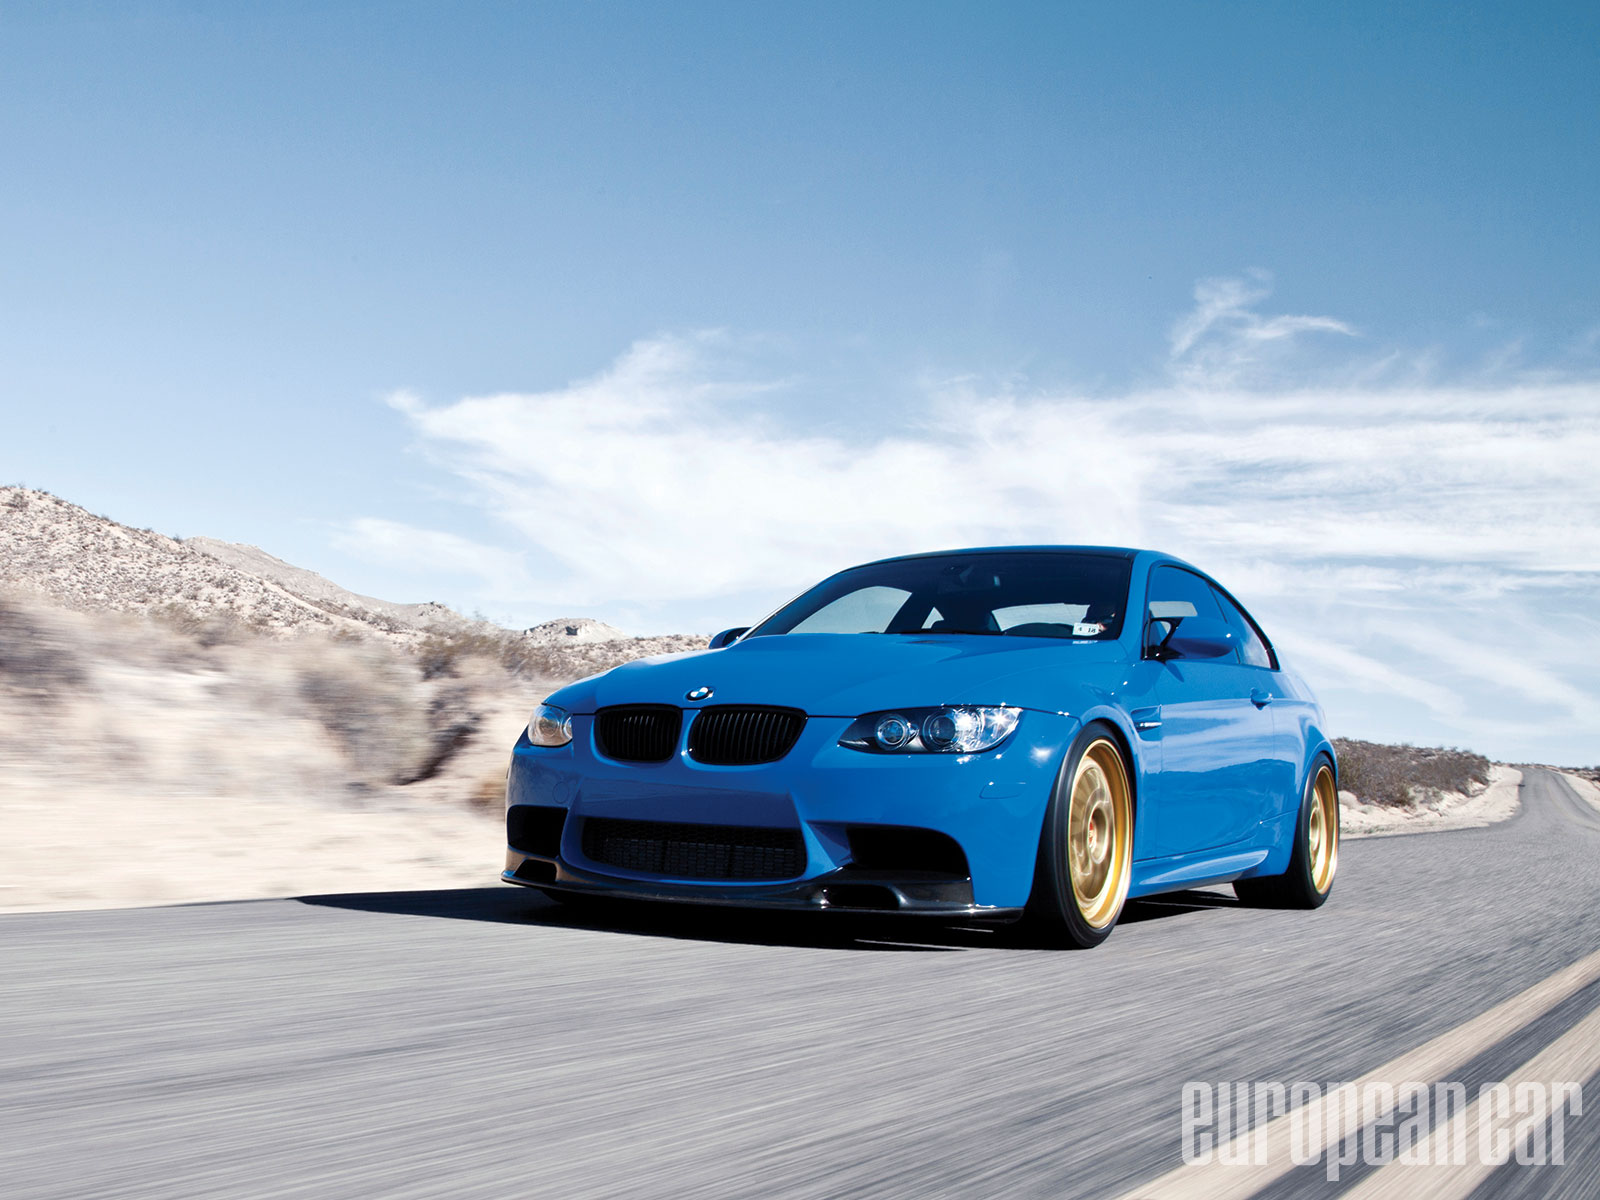 2013 BMW M3 Coupe - European Car Magazine